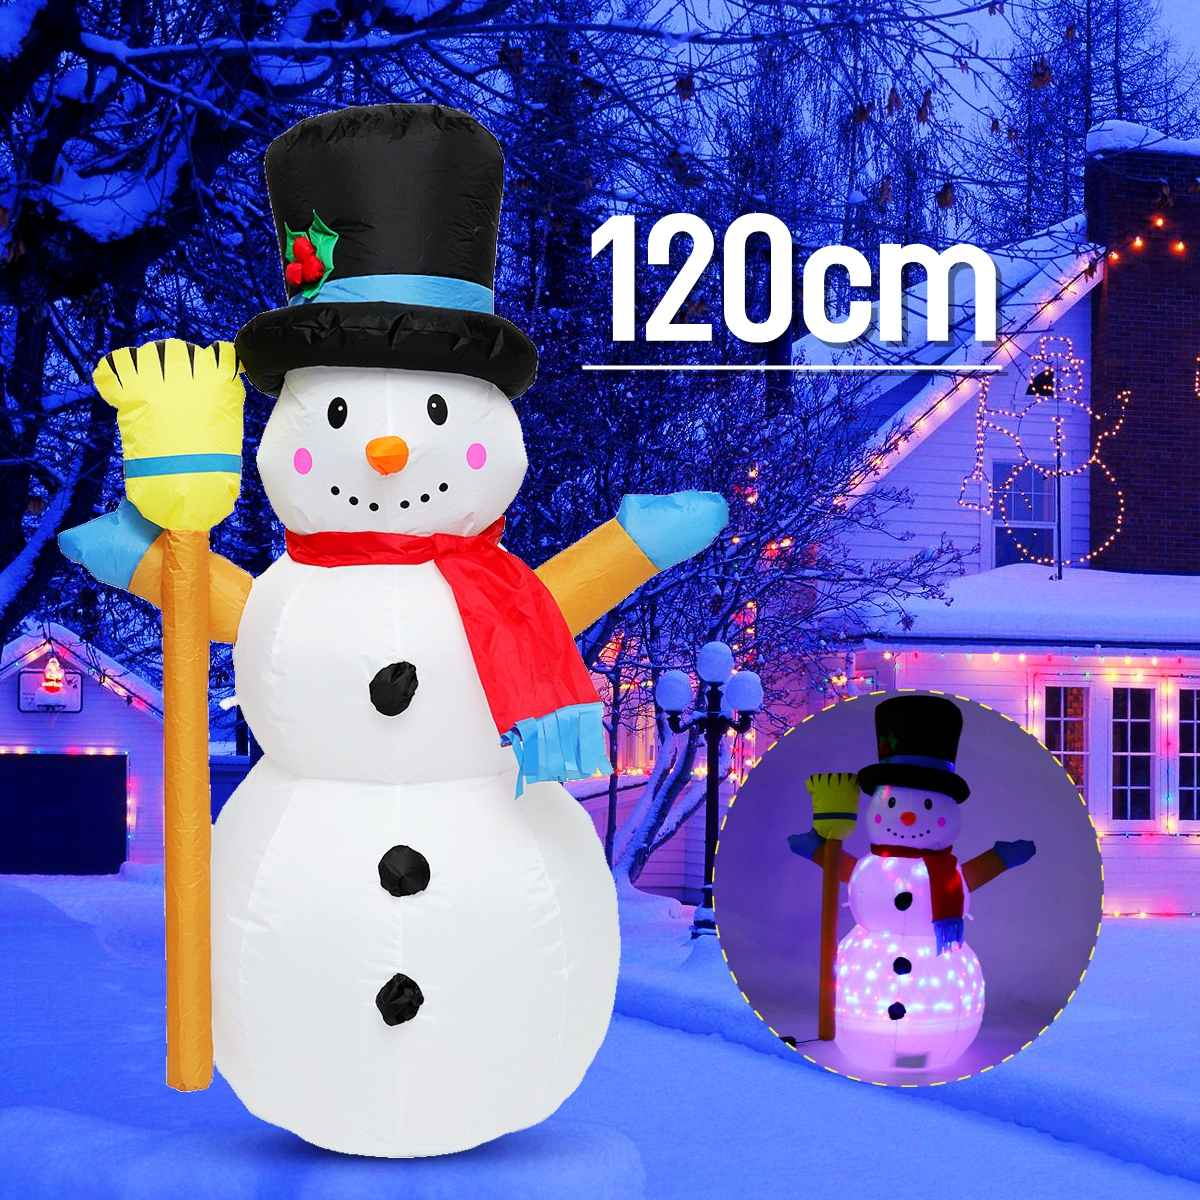 1.2M Christmas Snowman LED Inflatable Model Snowman Doll Broom Cover Christmas Decoration Dressing Supplies+Fan x085 hot sell giant 4 m christmas inflatable snowman for christmas decoration with air blower